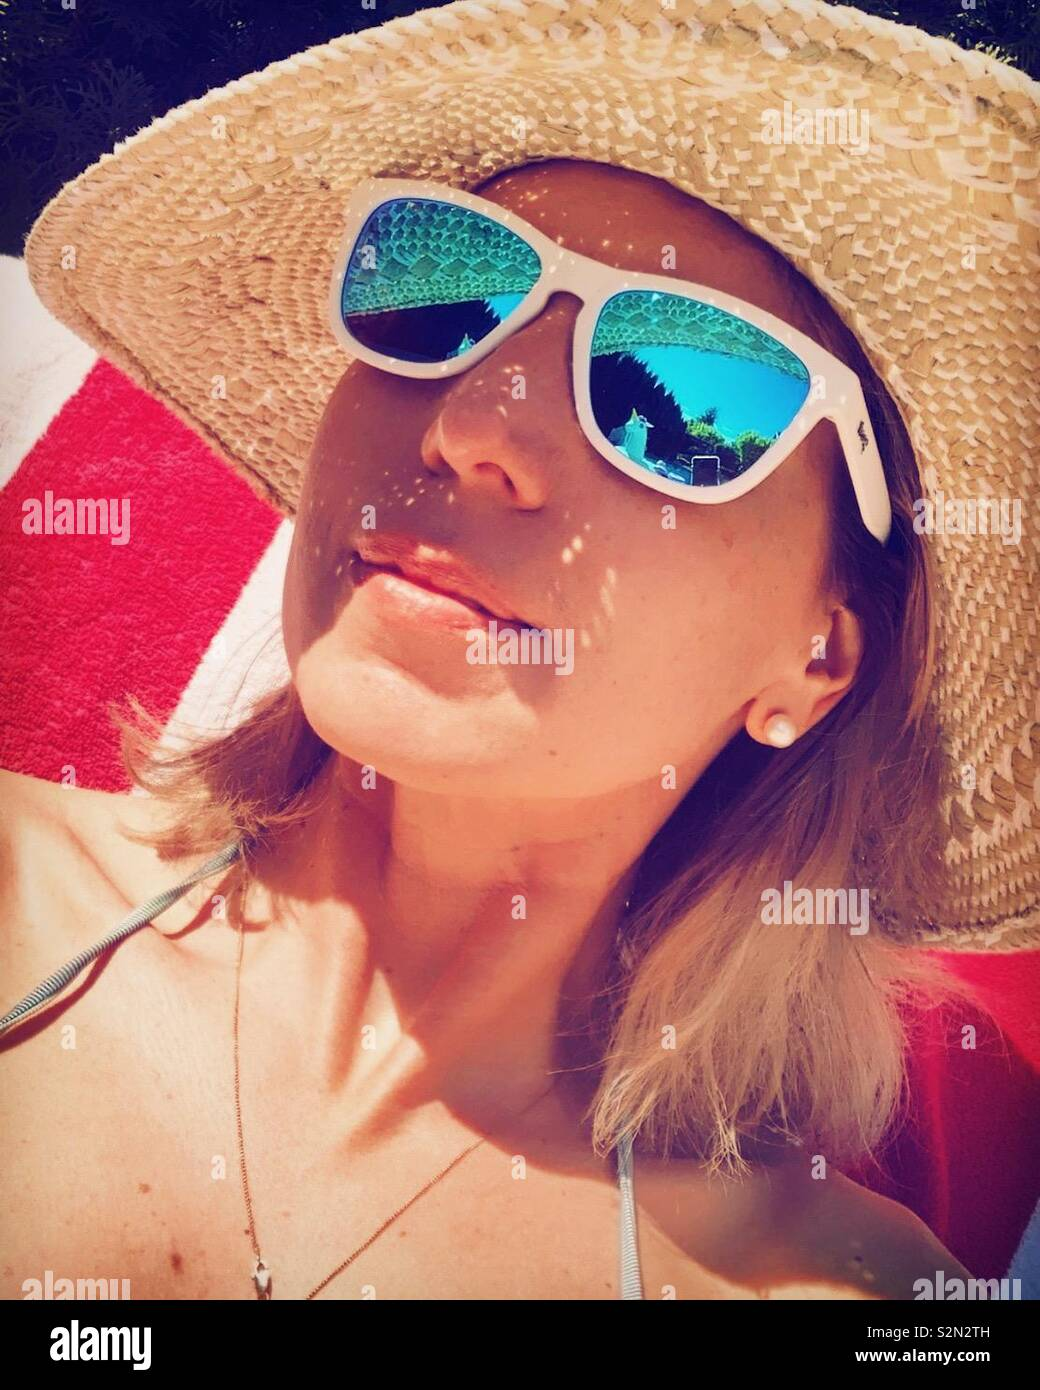 Woman wearing sunglasses and a straw hat on a sunny day. Stock Photo